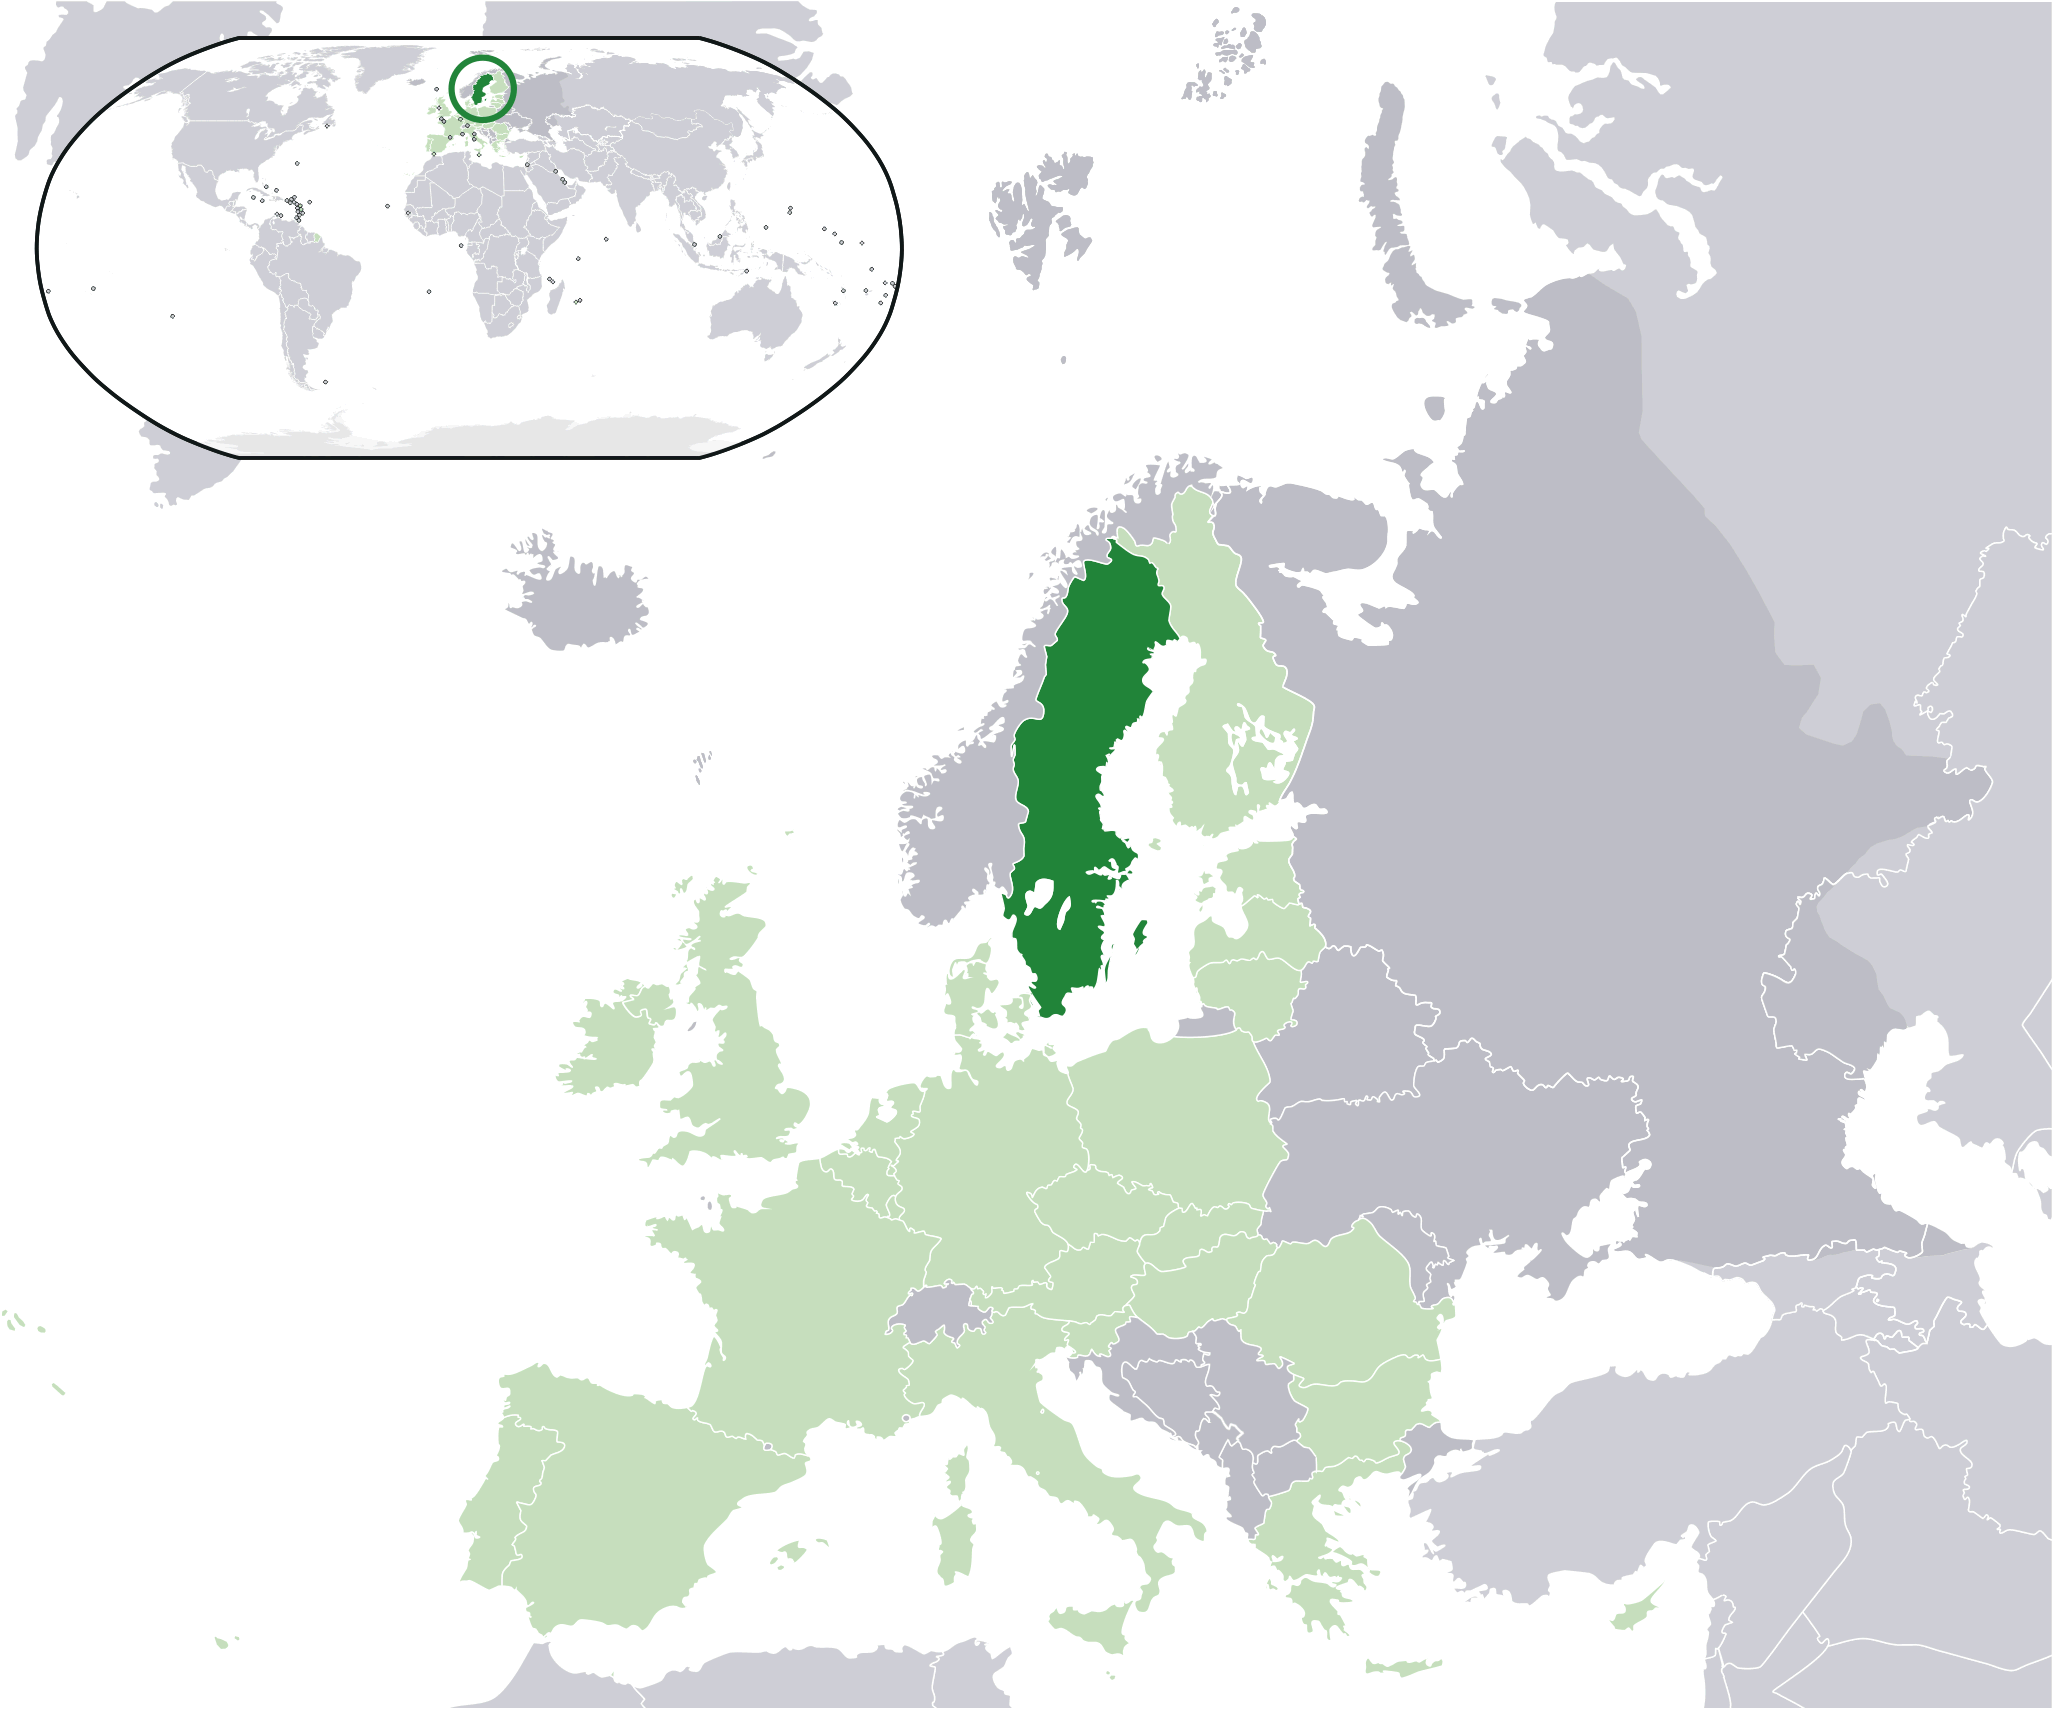 Location Sweden Eu Europe Mapsofnet - Sweden european map